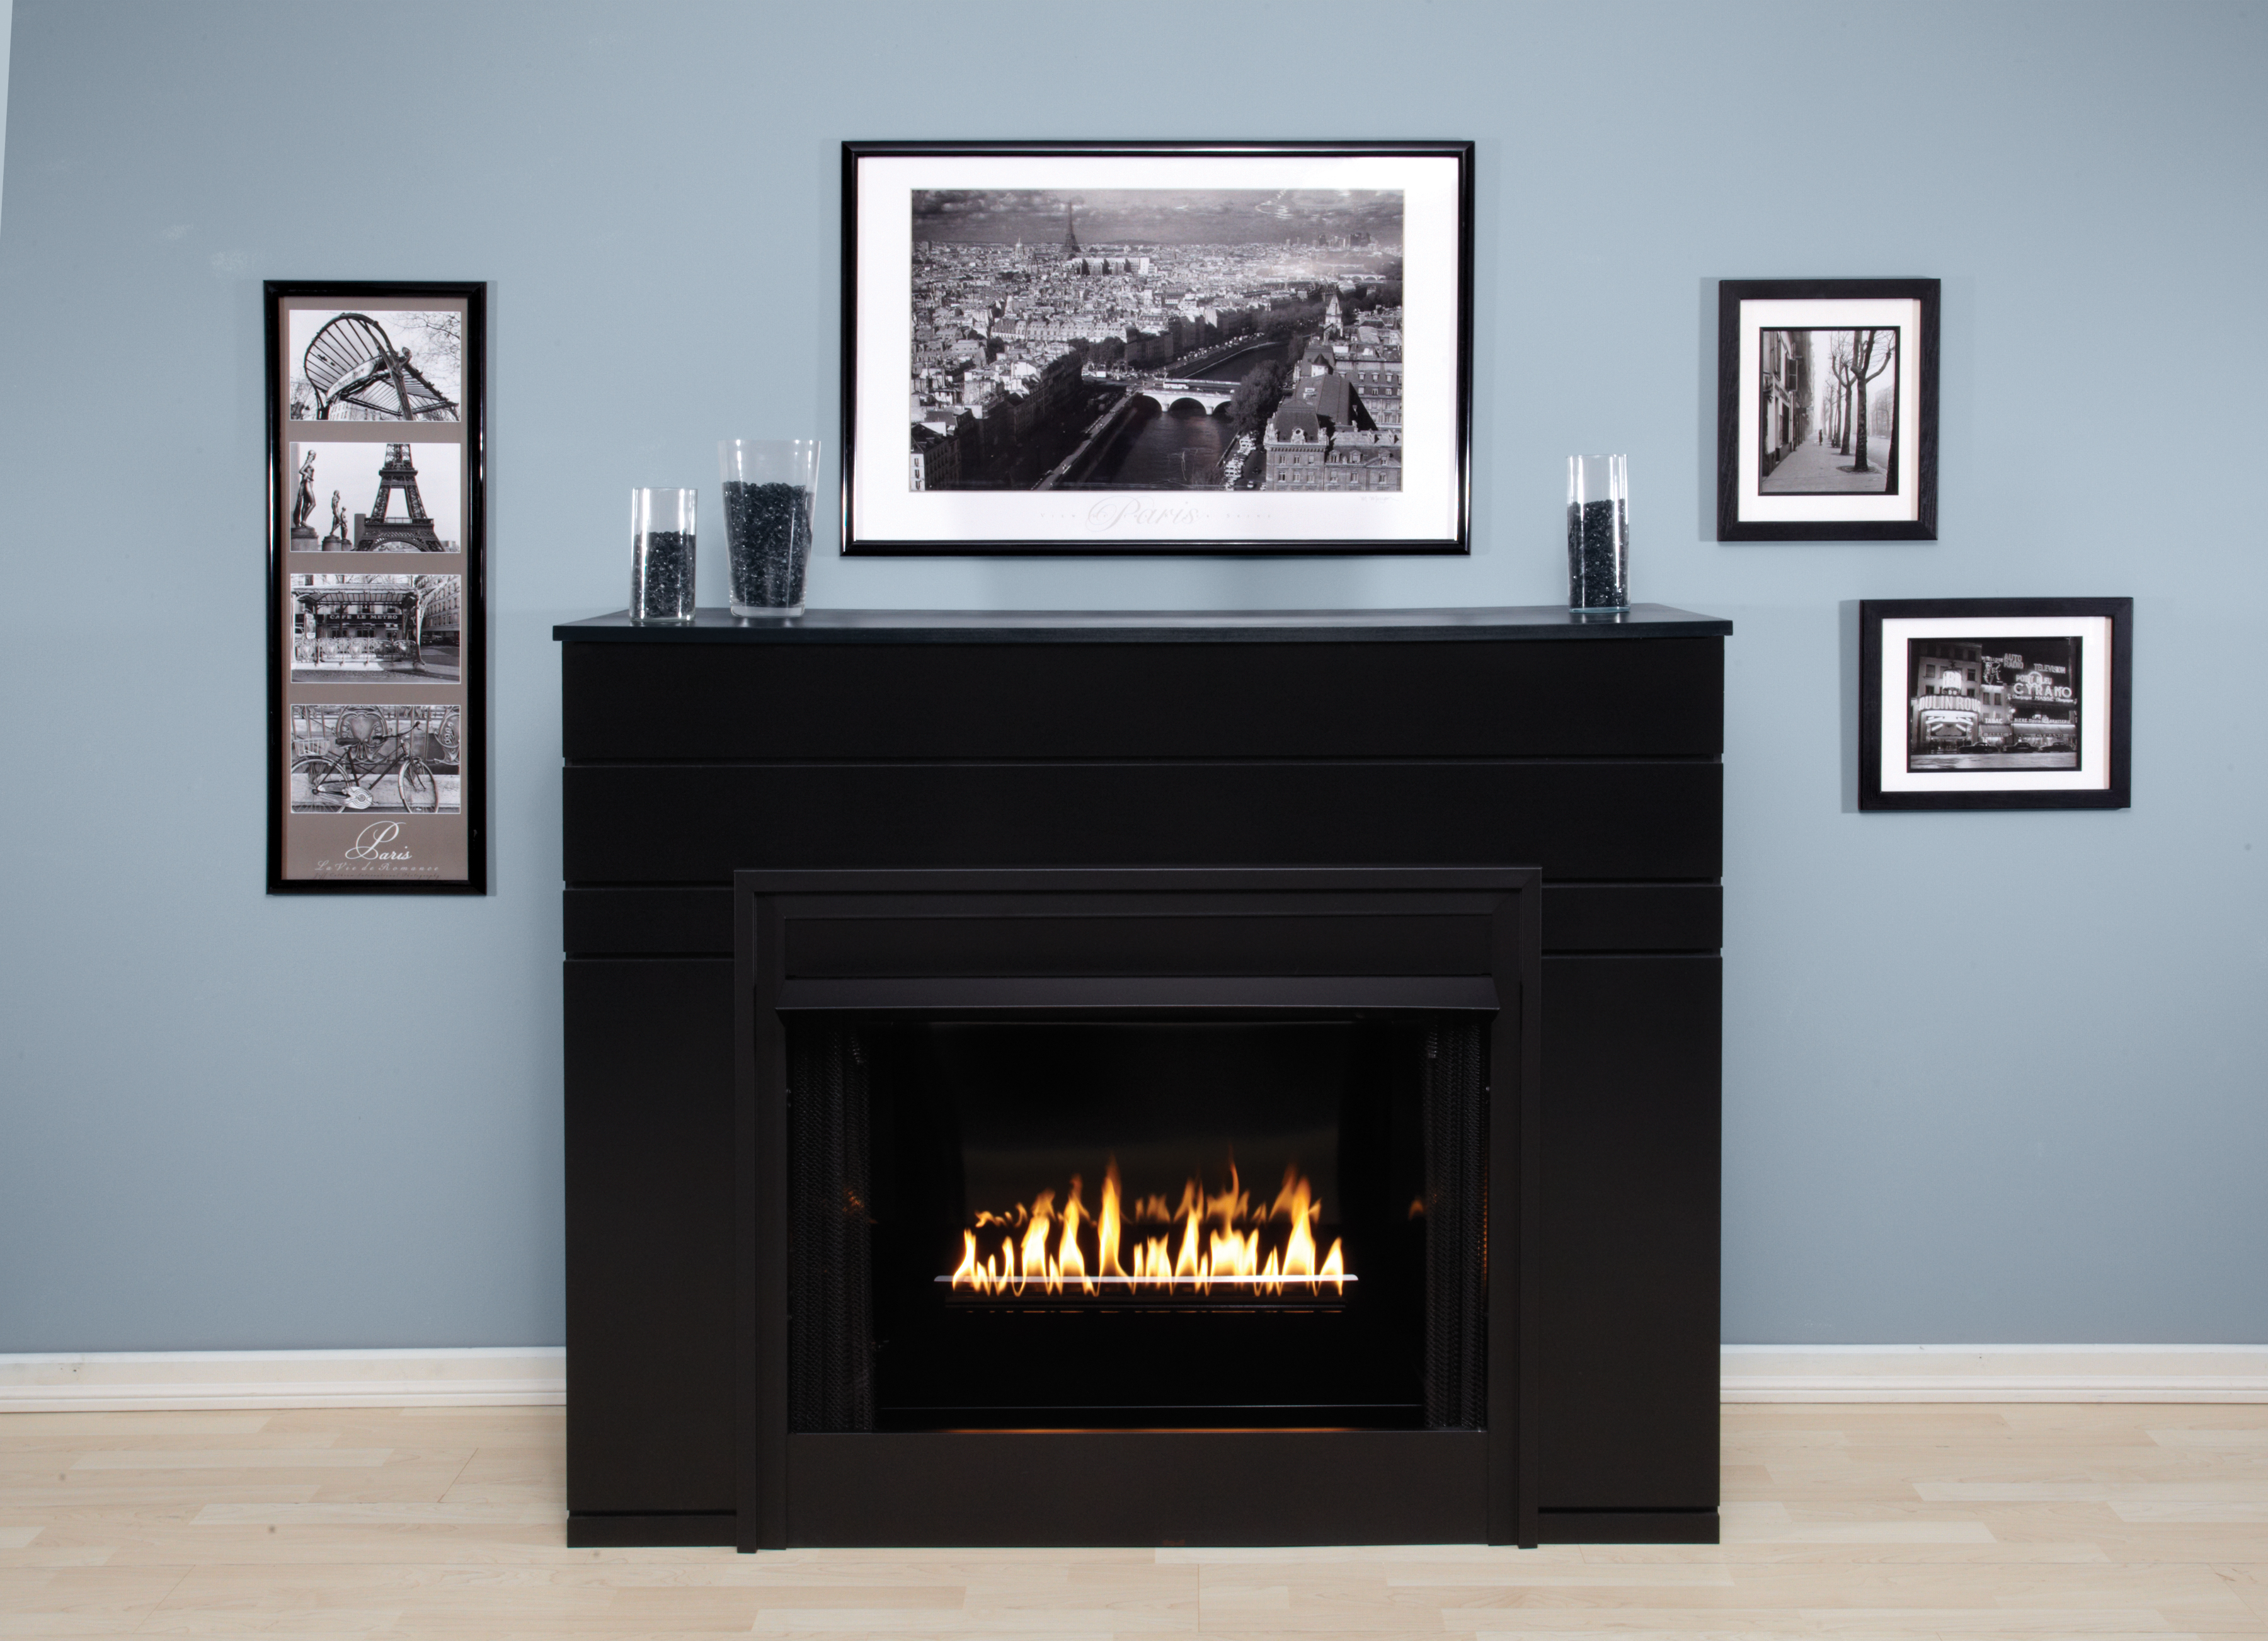 Wall Switch Will Not Turn On Gas Fireplace Fireplaces